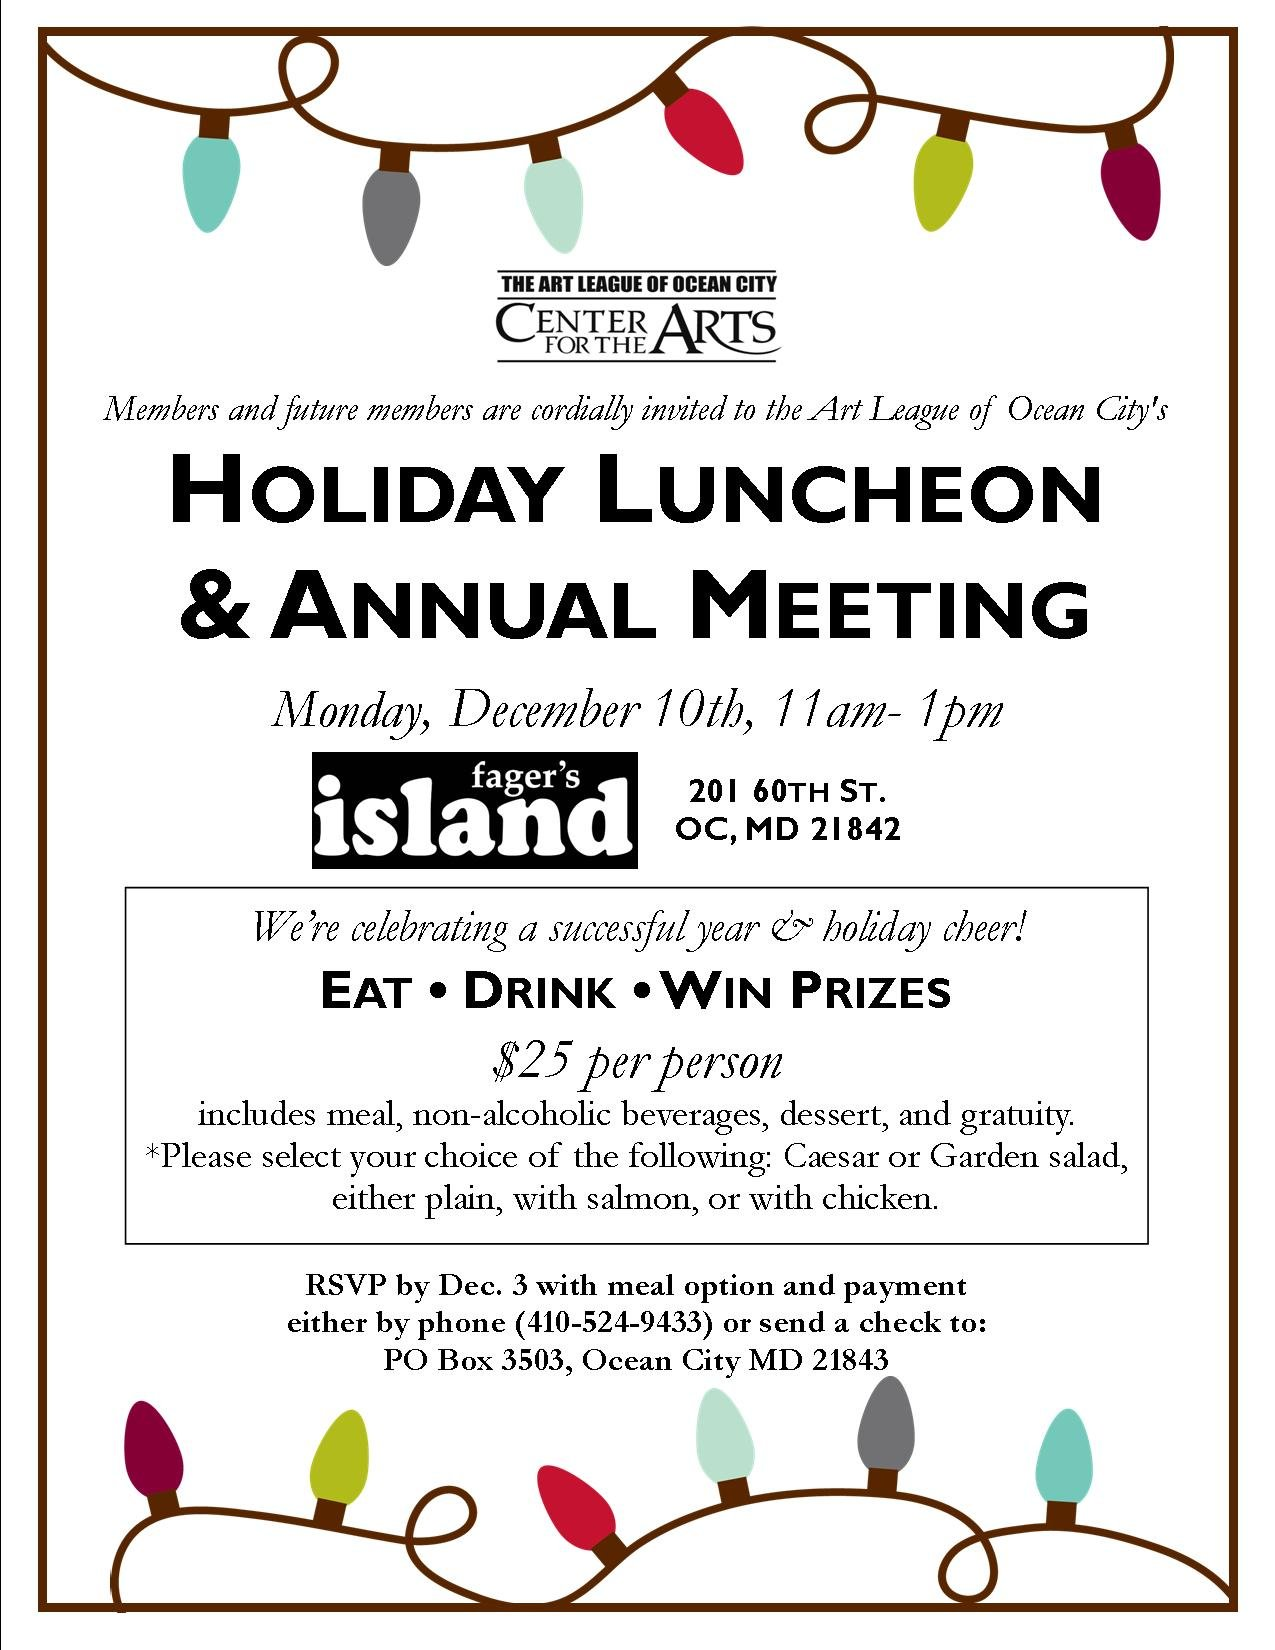 Annual Meeting And Holiday Luncheon Invitation 2018